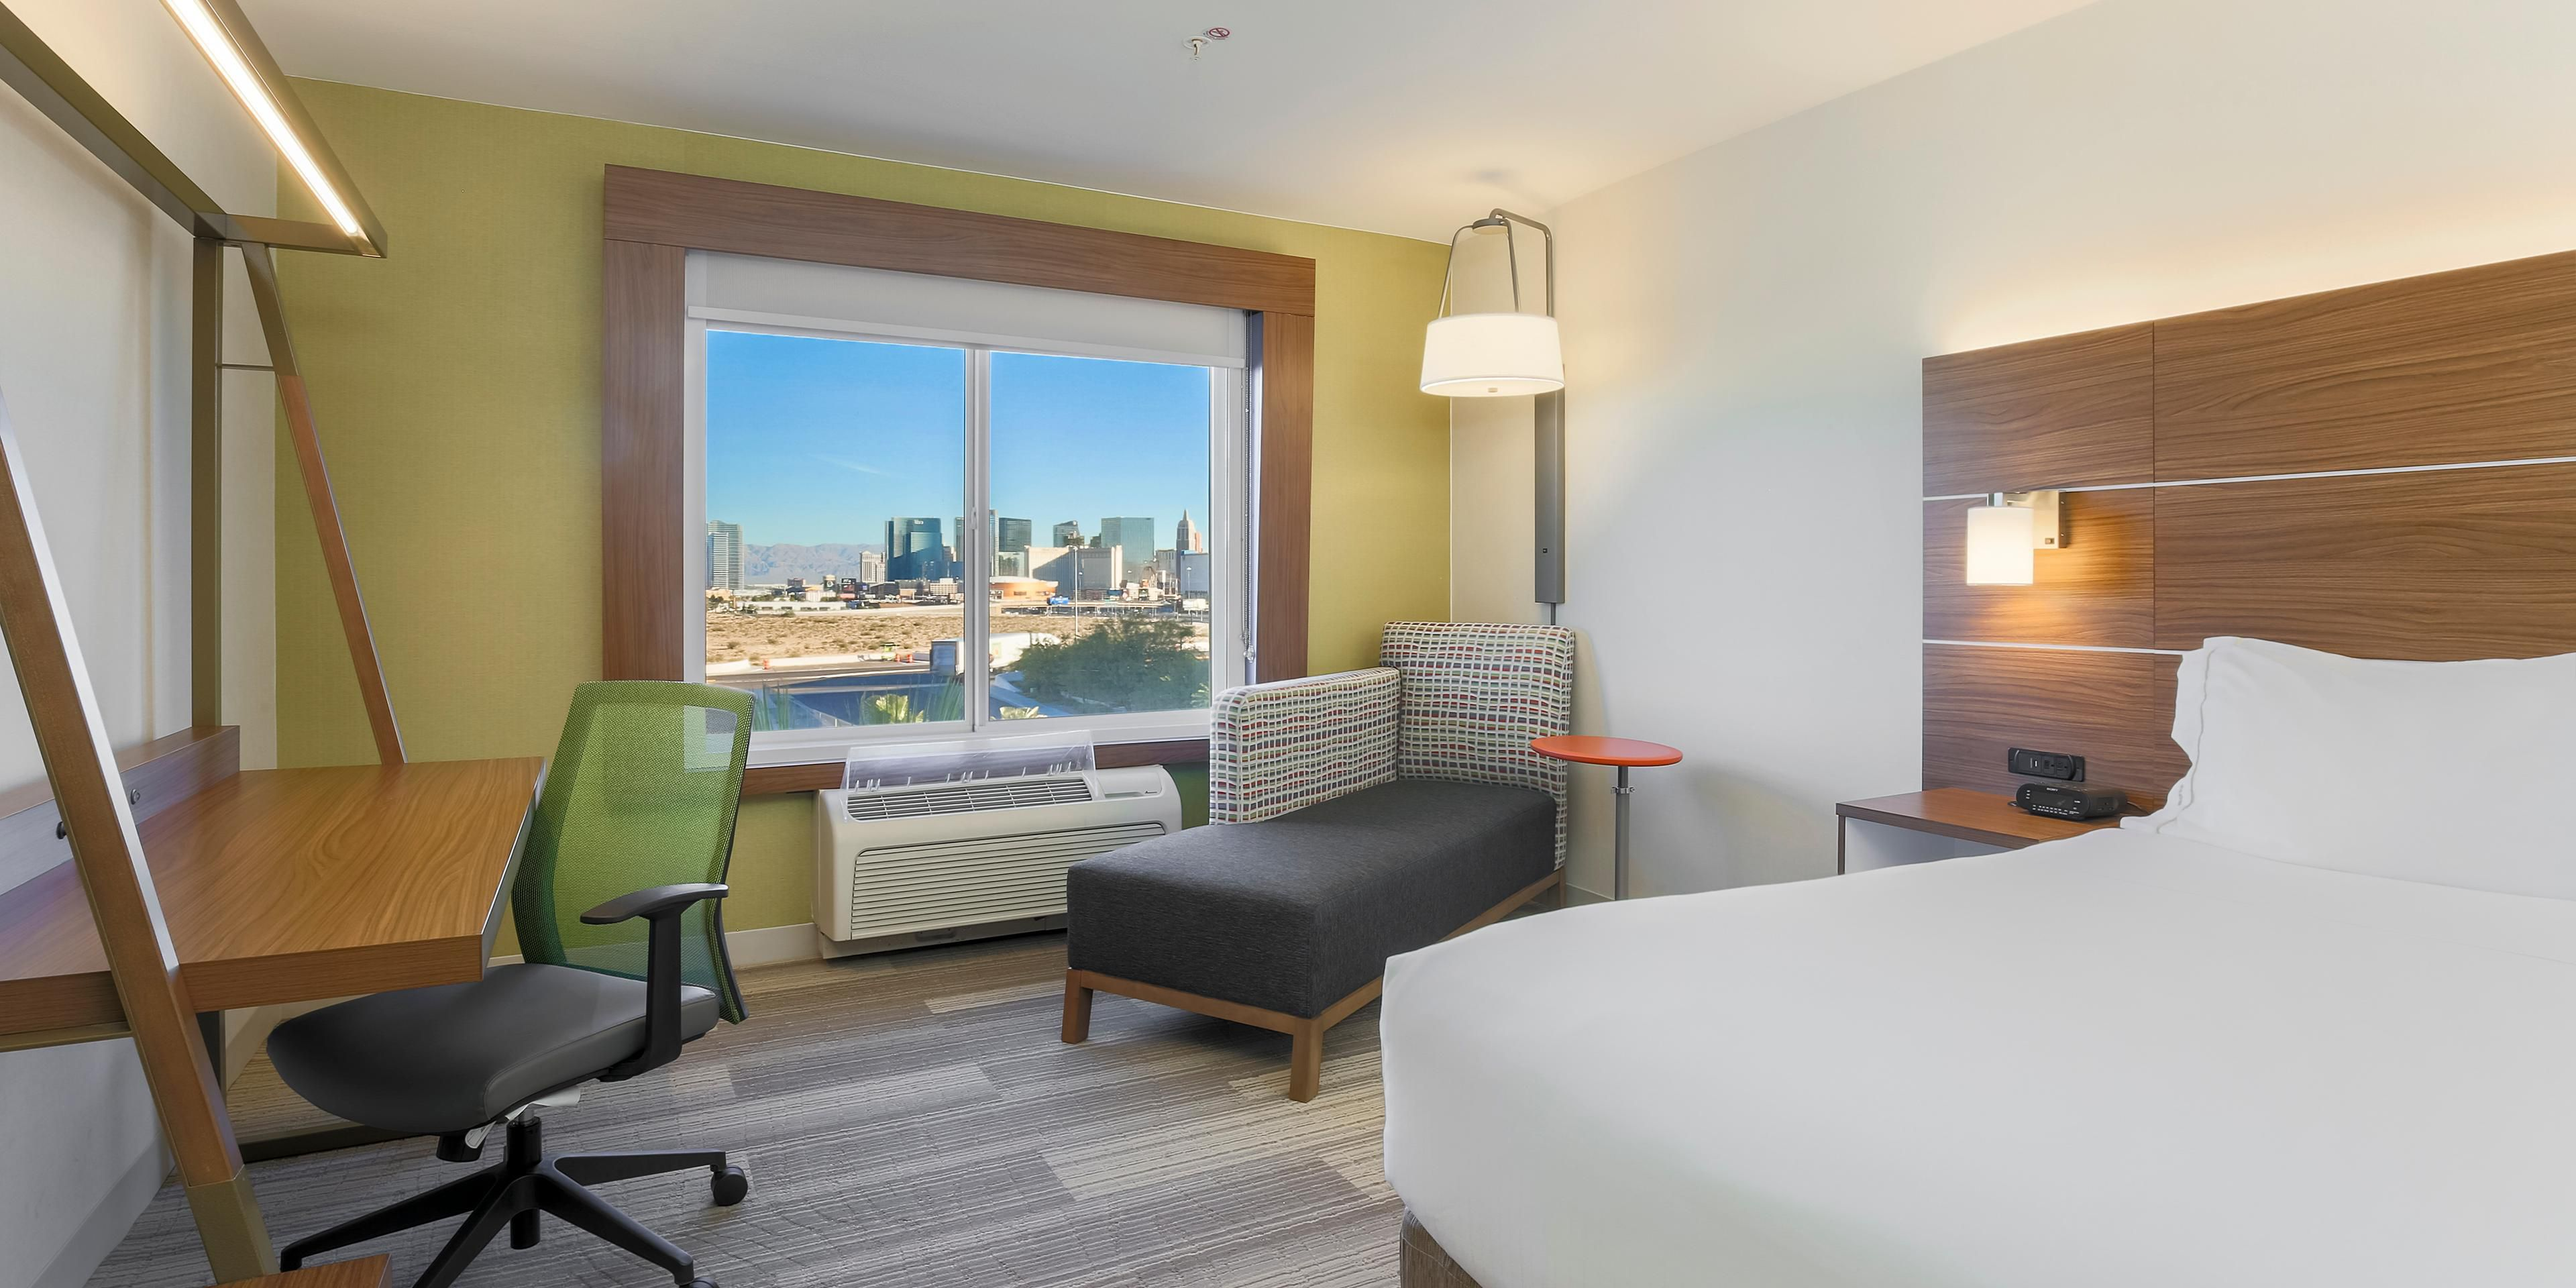 blogs the room rooms view with cabana vegas best a las hotels hotel suite linq